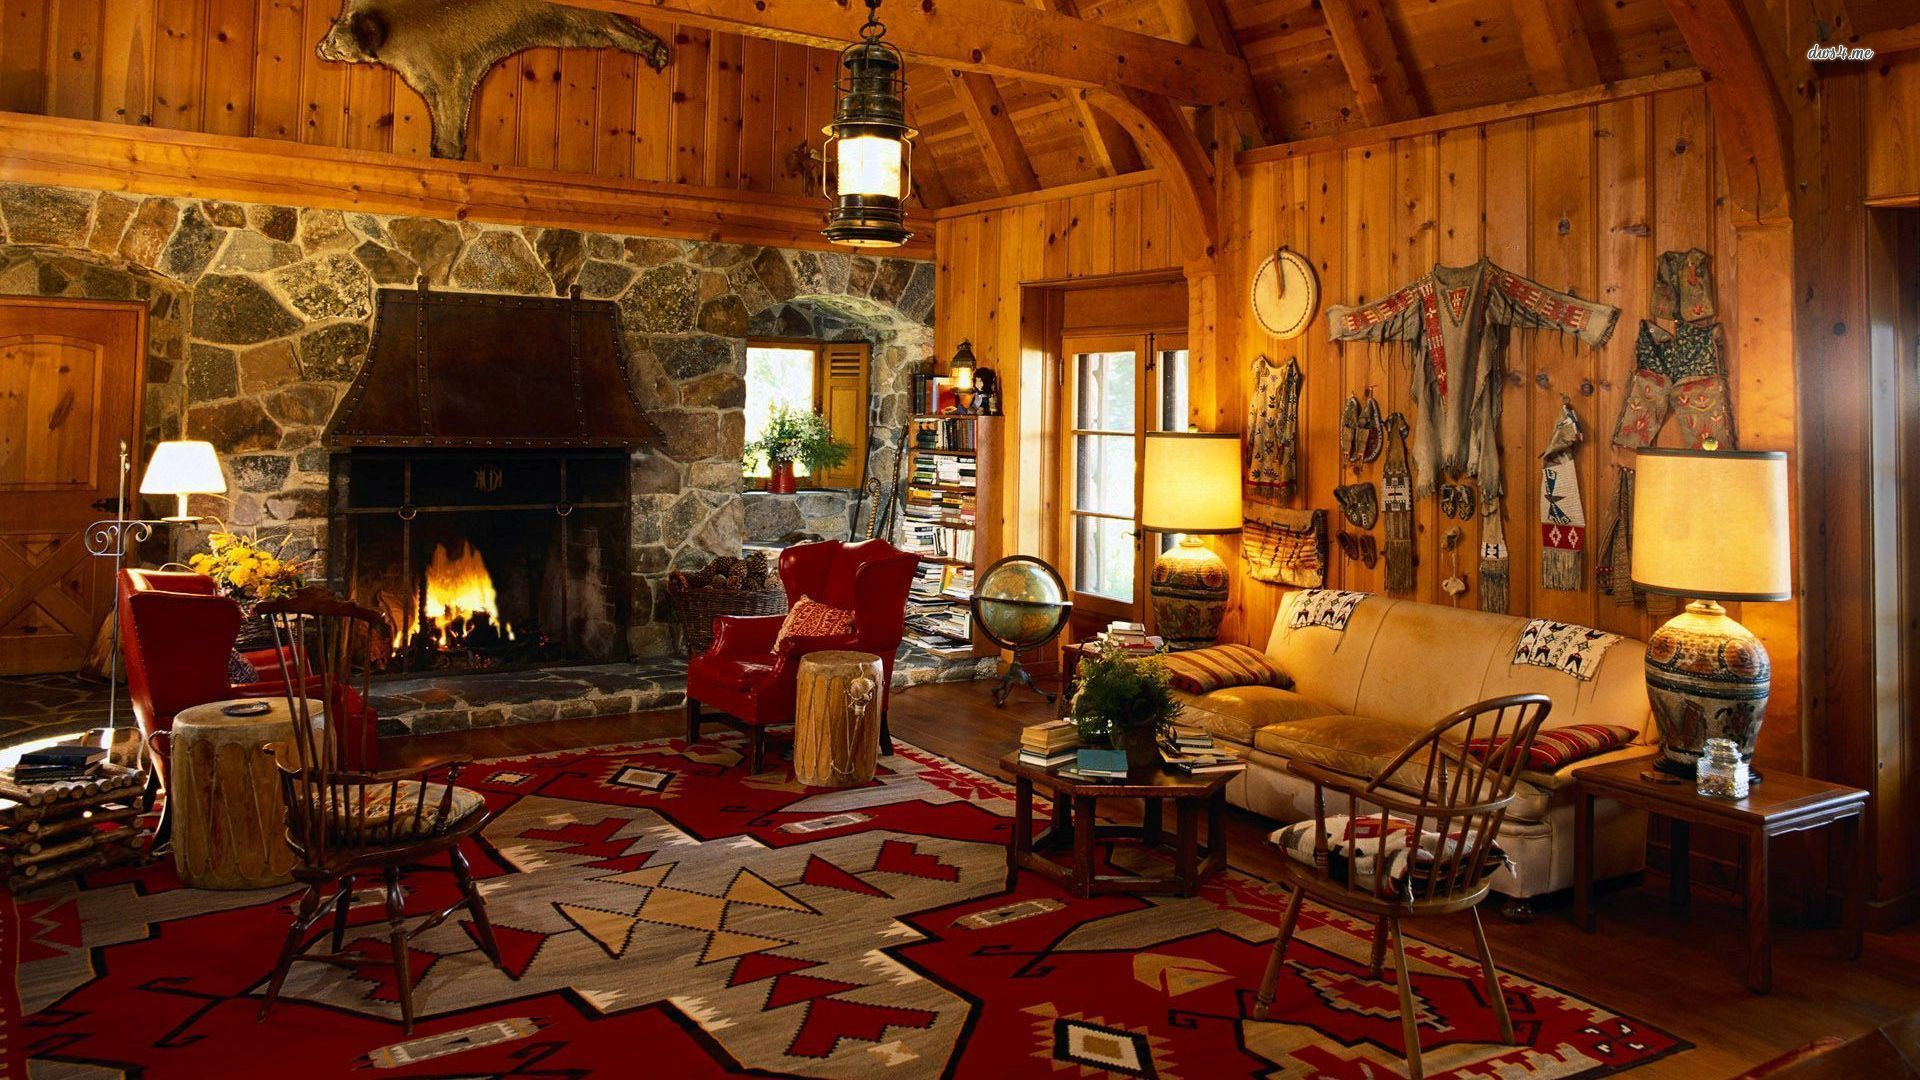 Christmas Cabin Fireplace Wallpaper Wallpaper Kid